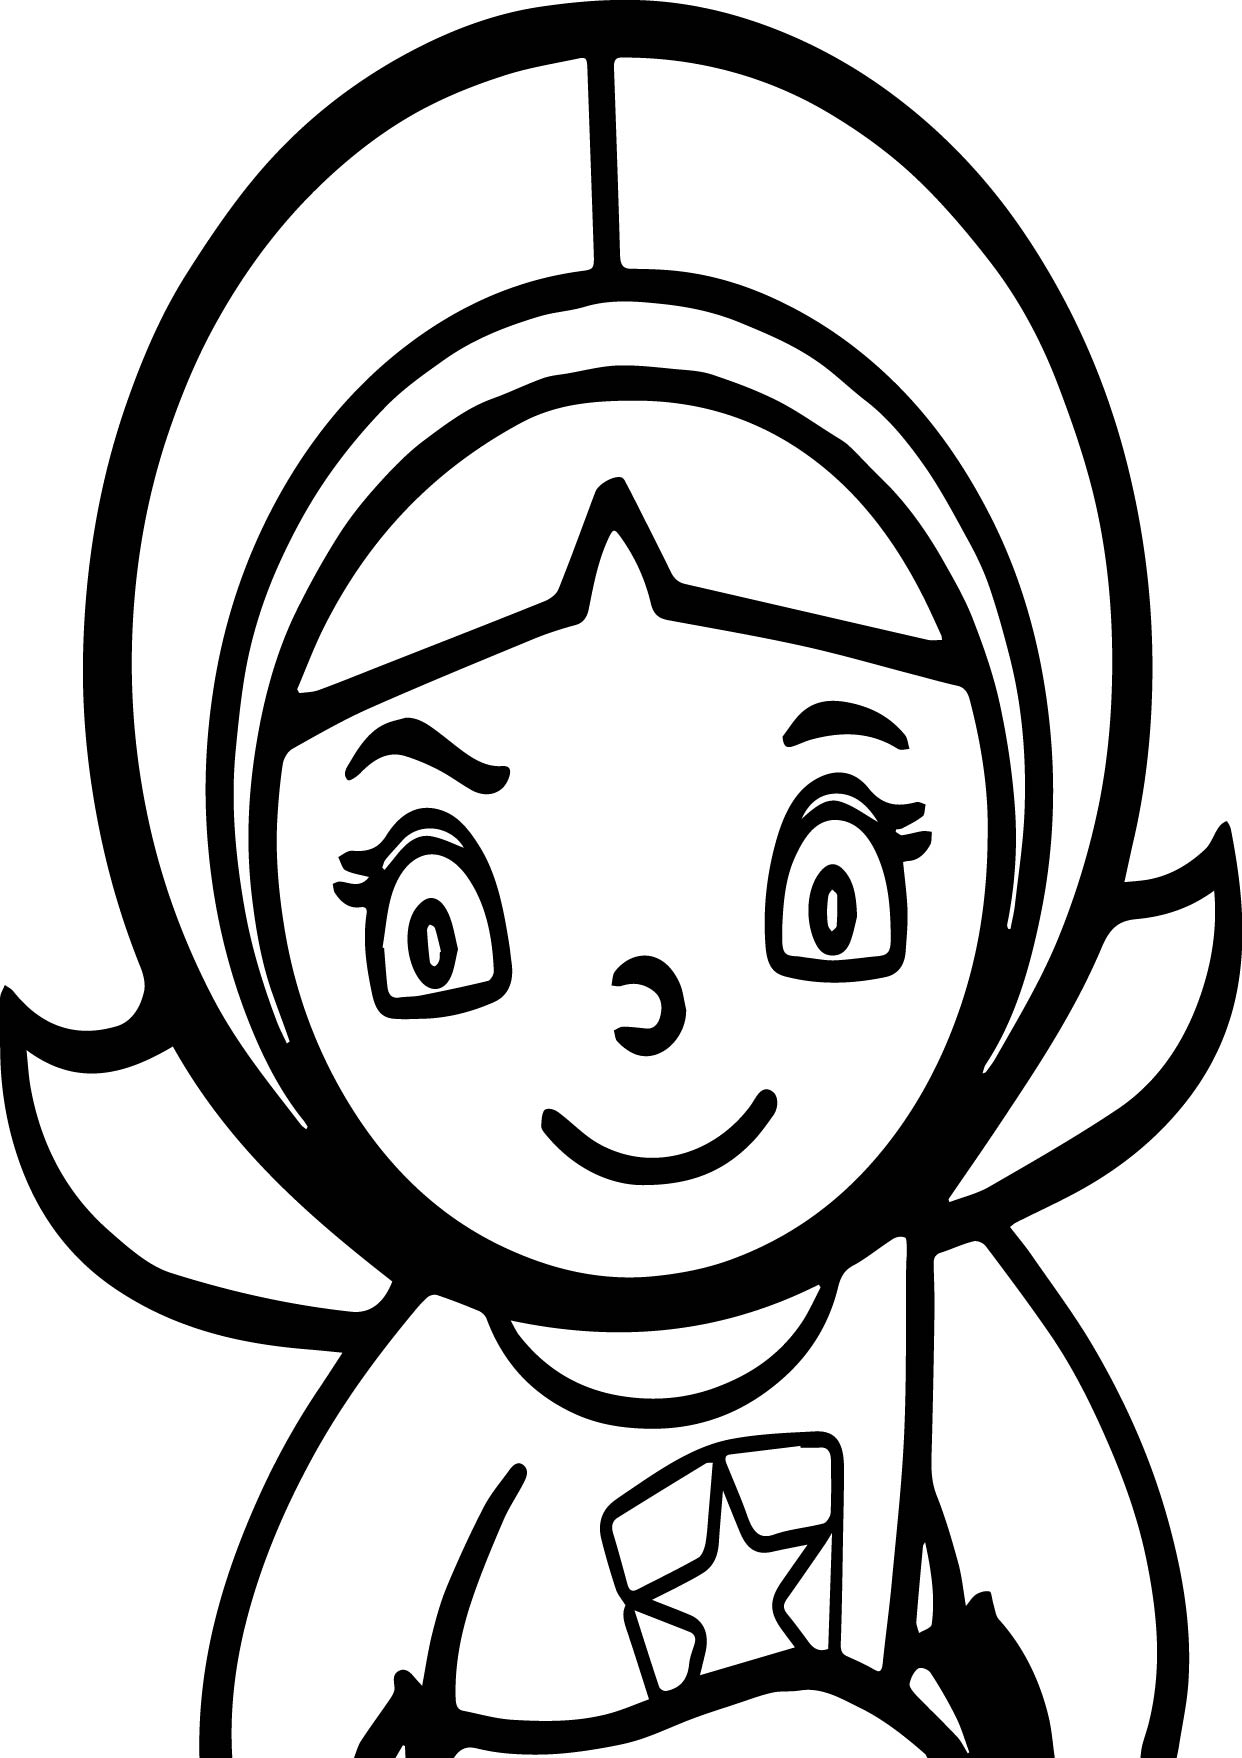 Word girl pbs kids coloring page for Pbskids coloring pages